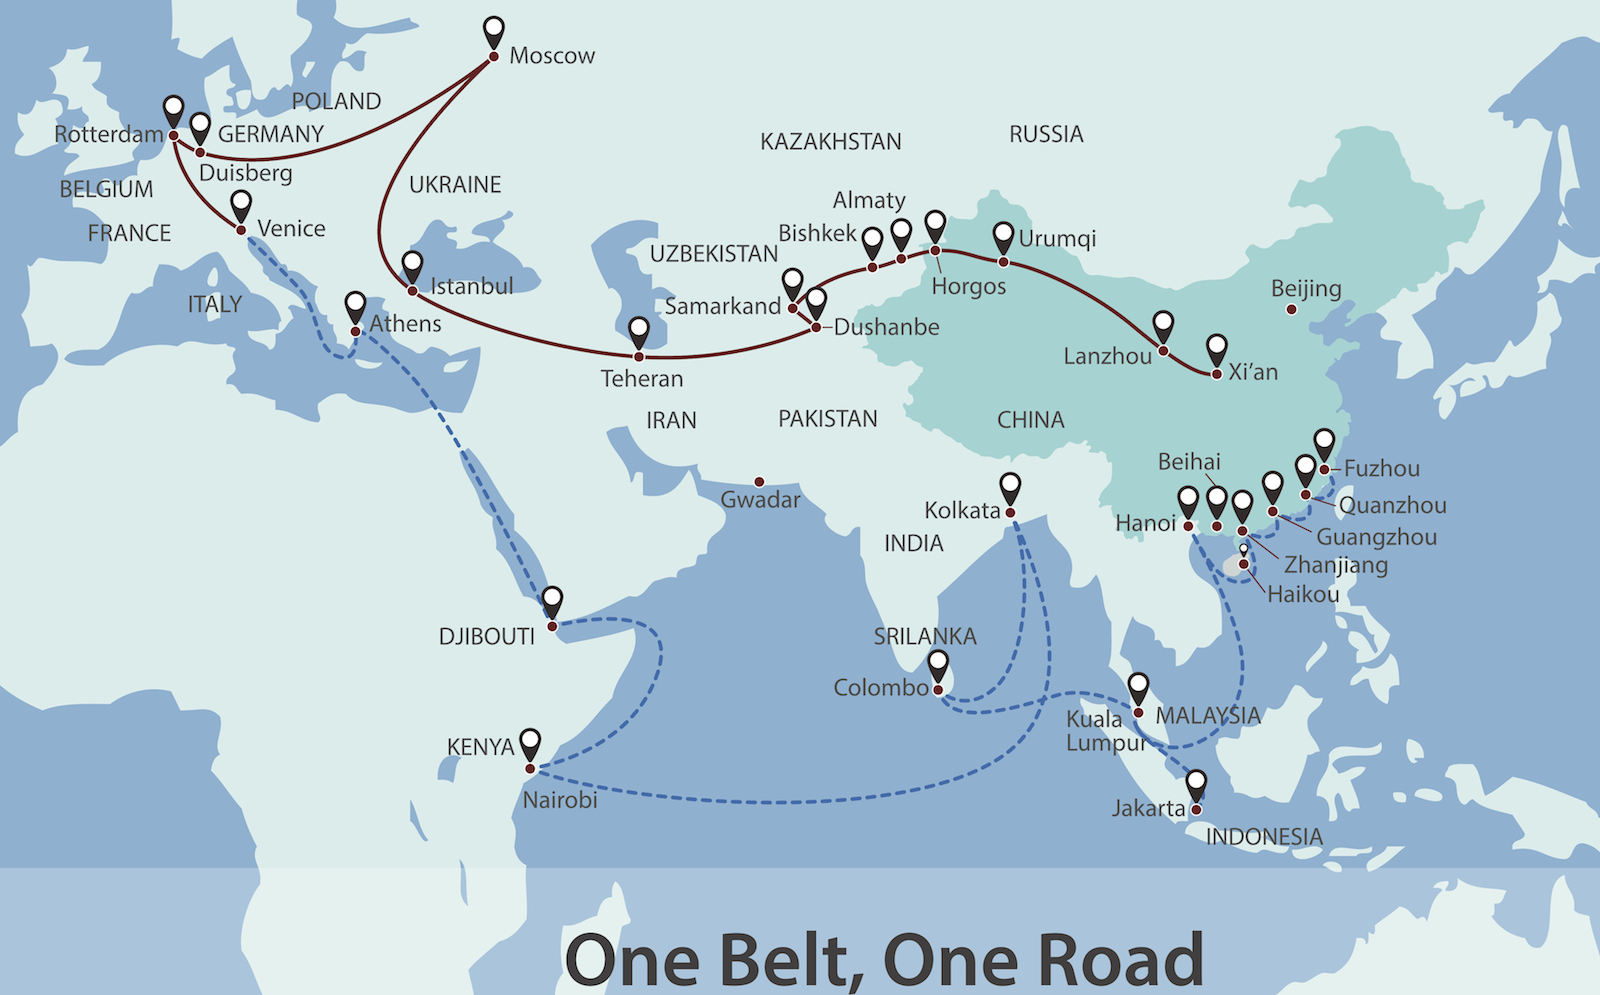 Europe Sees Few Benefits From China S Belt And Road Asia Times